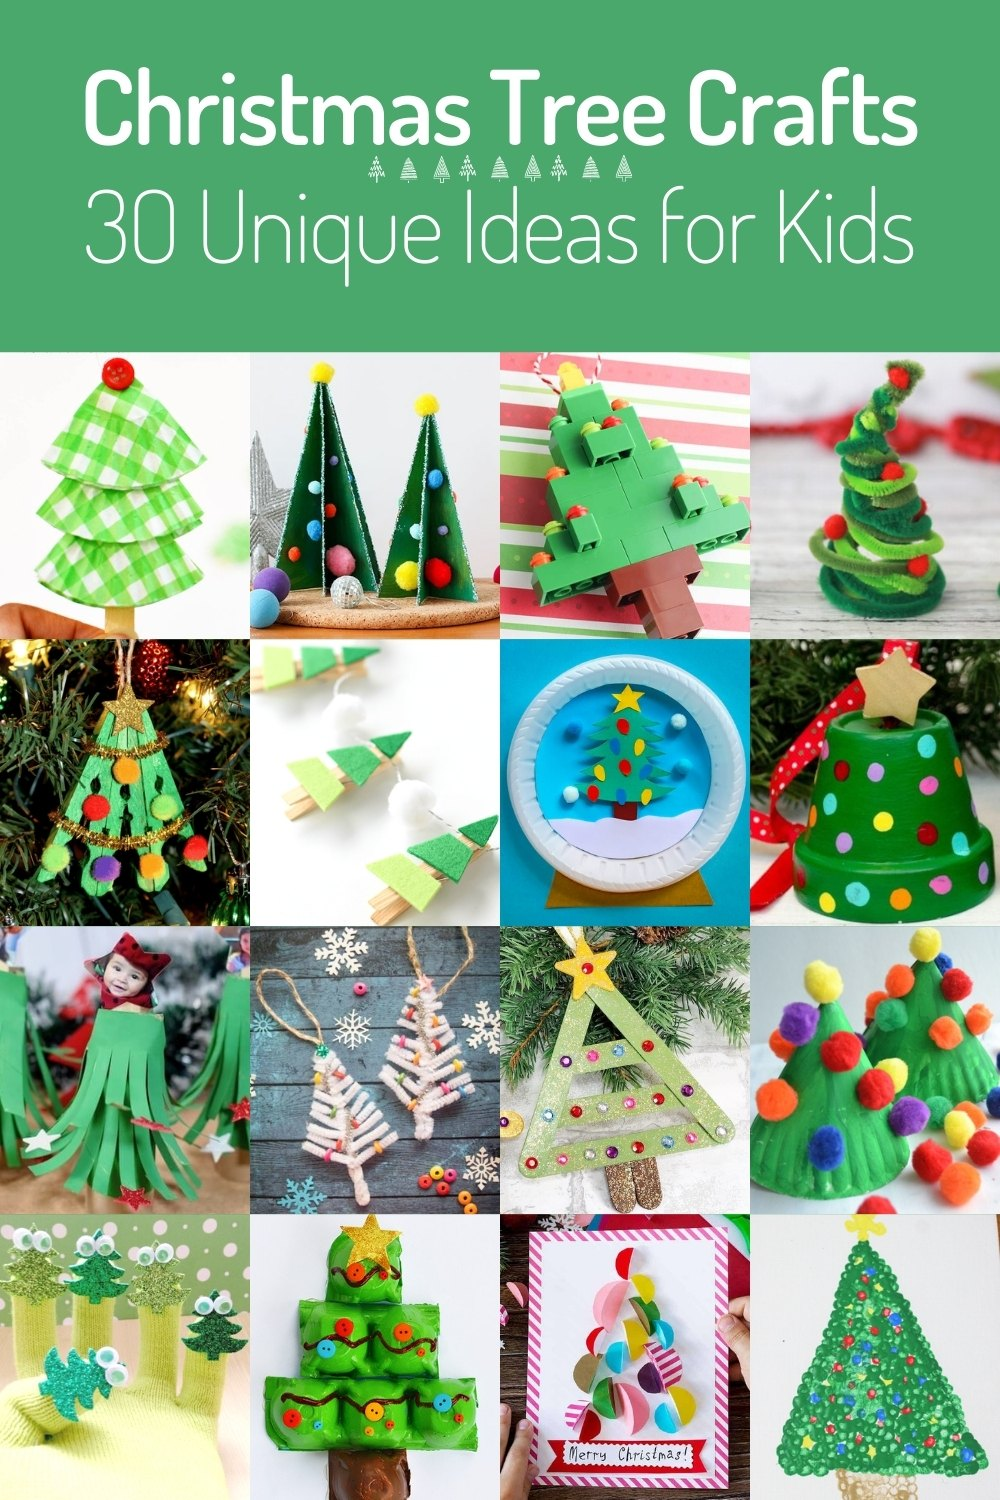 Unique Christmas Tree Crafts for Kids